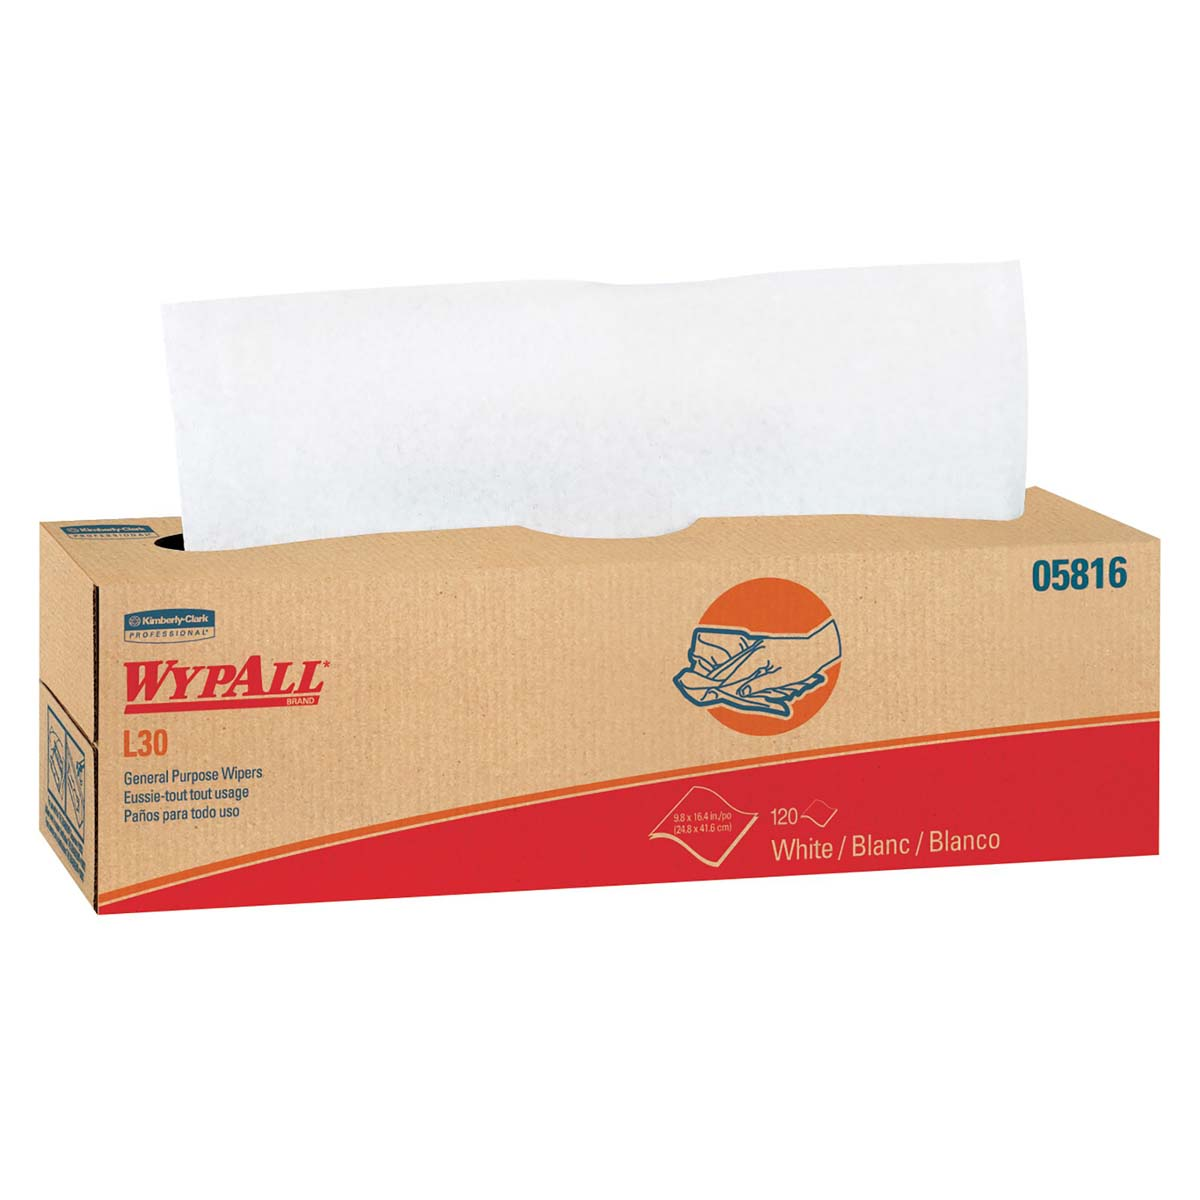 Wypall L30 DRC Wipers (05816), Strong and Soft Wipes, White, 120 Sheets / Pop-Up Box, 6 Boxes / Case, 720 Wipes / Case